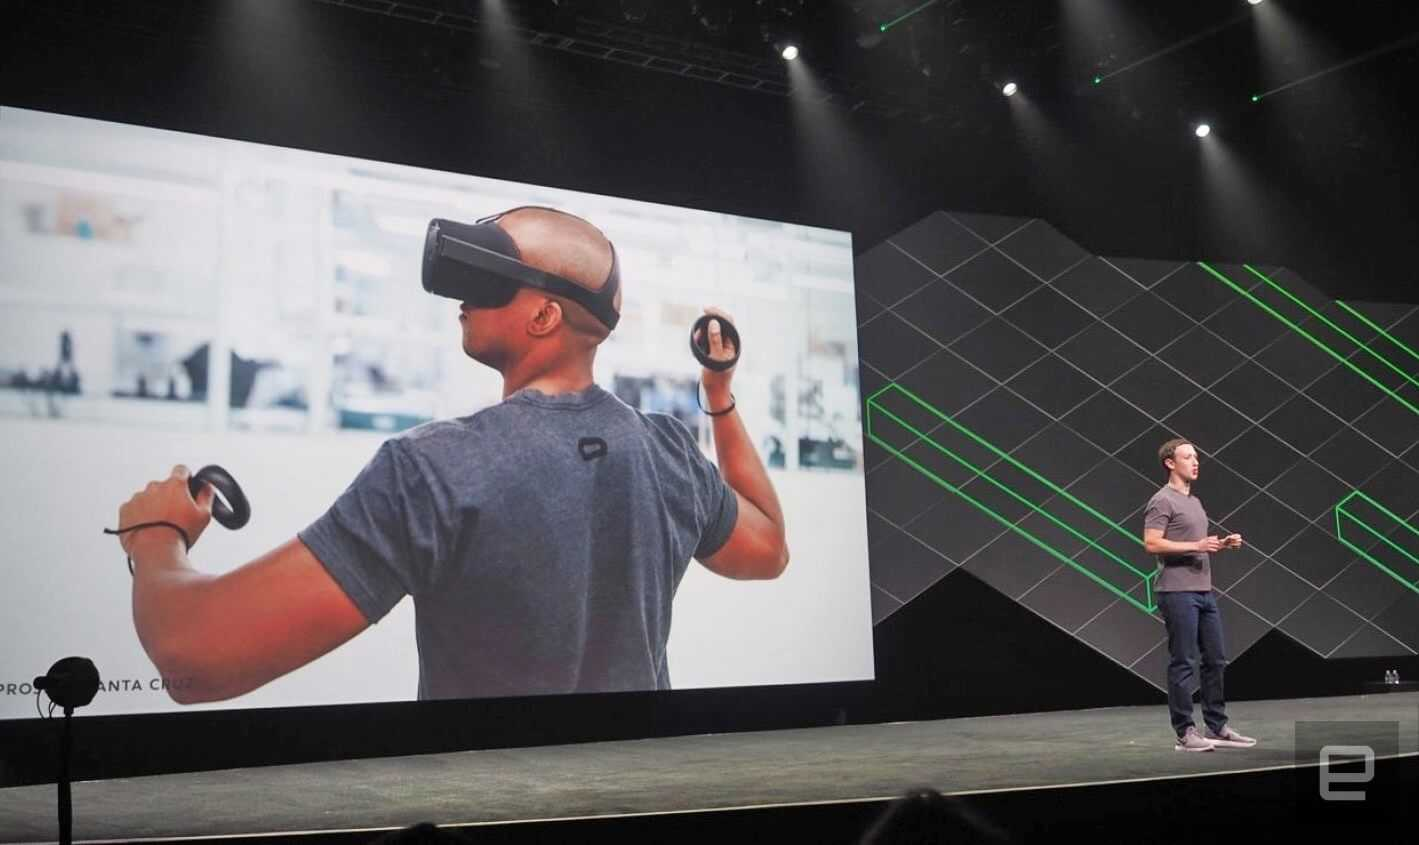 OCULUS CONNECT 5: TOP TECH MEDIA REVIEW